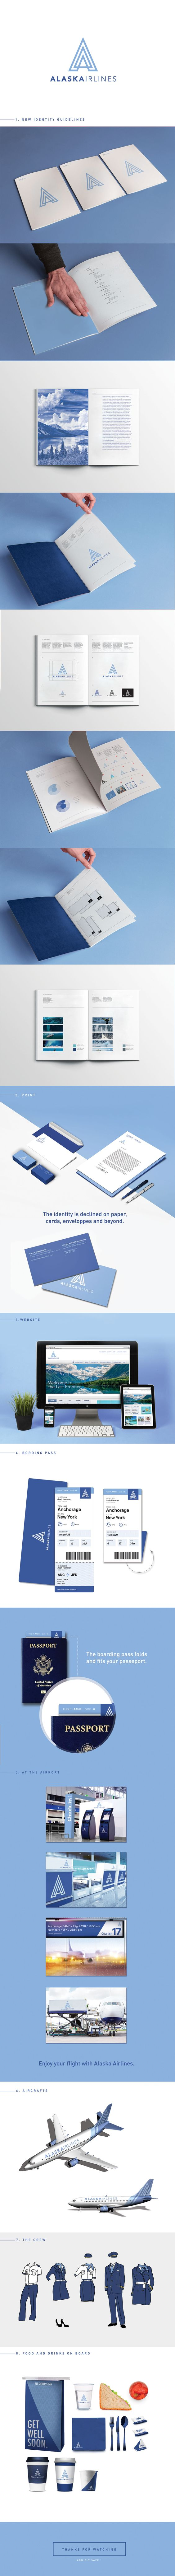 https://www.behance.net/gallery/32328905/Alaska-Airlines-Brand-identity